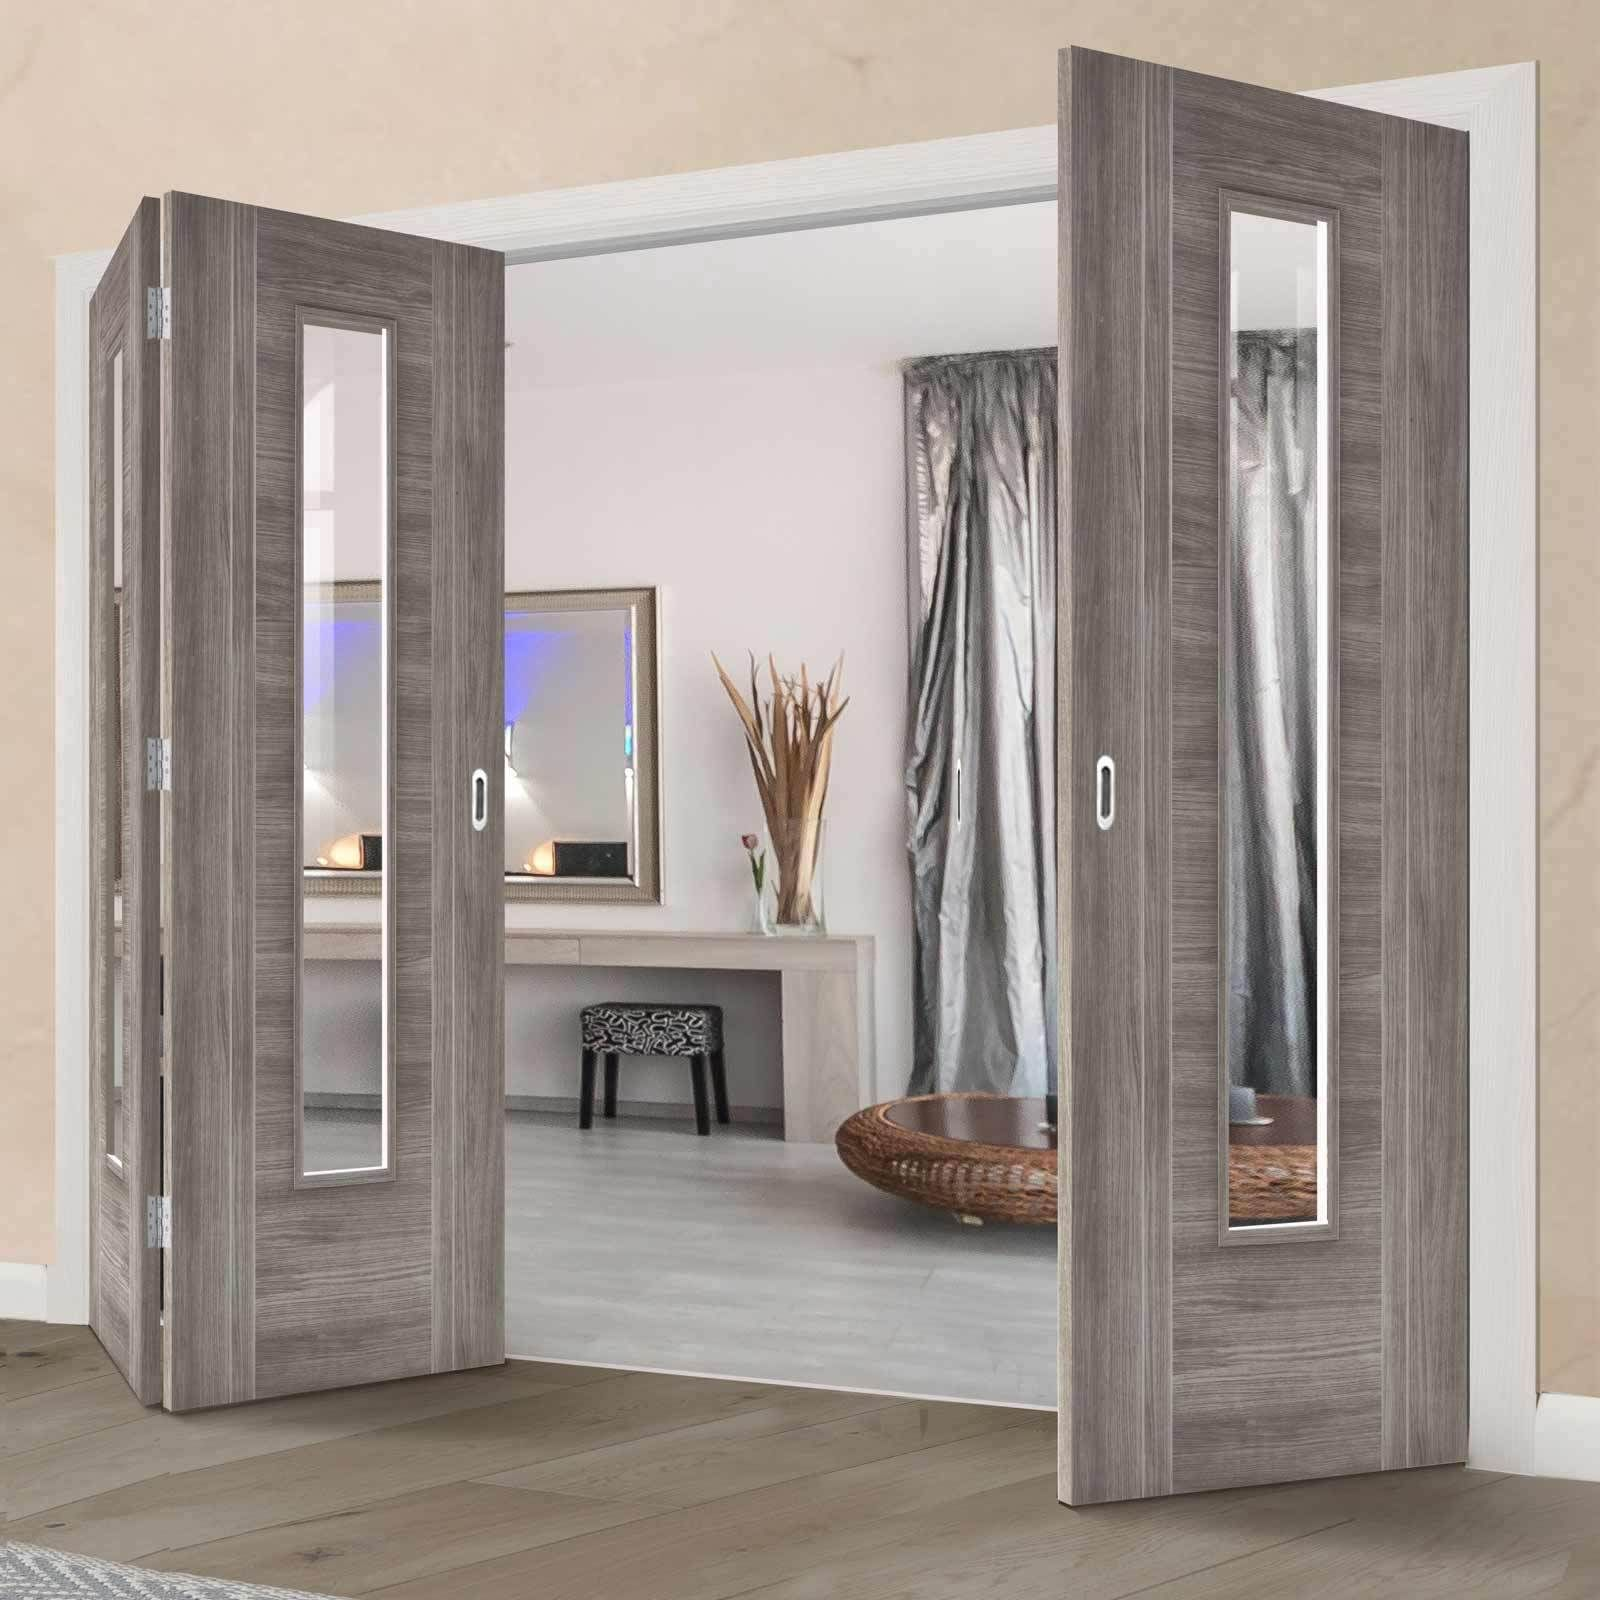 Thrufold Laminate Light Grey Ottawa 2 1 Folding Door Clear Glass Greydoors Bifold Decoracion De Interiores Puertas Interiores Puerta Interior